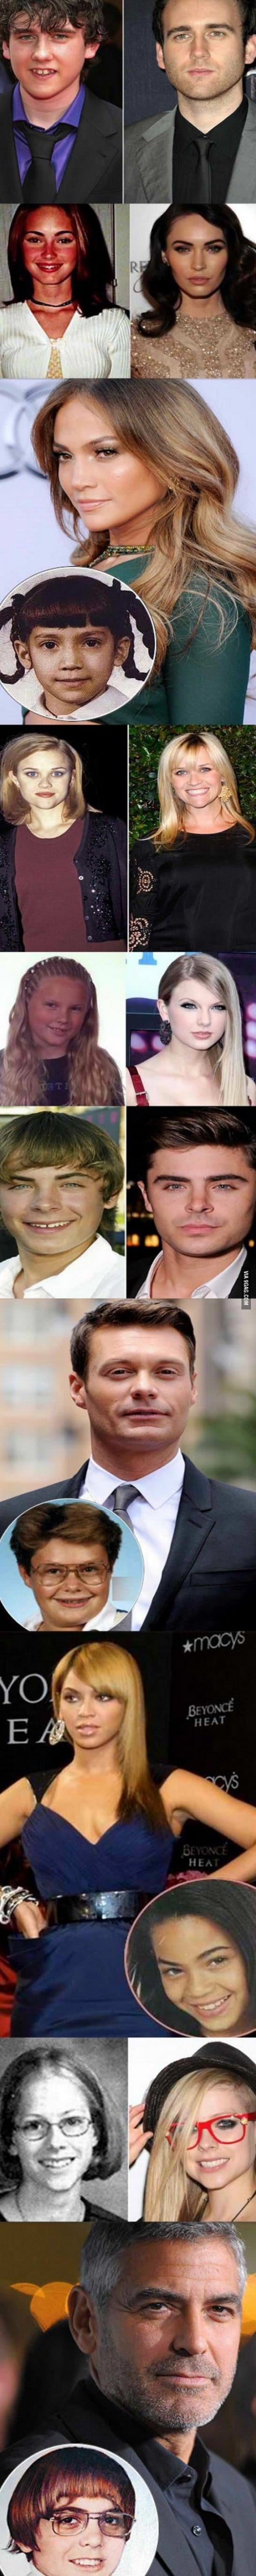 celebrities-then-and-now